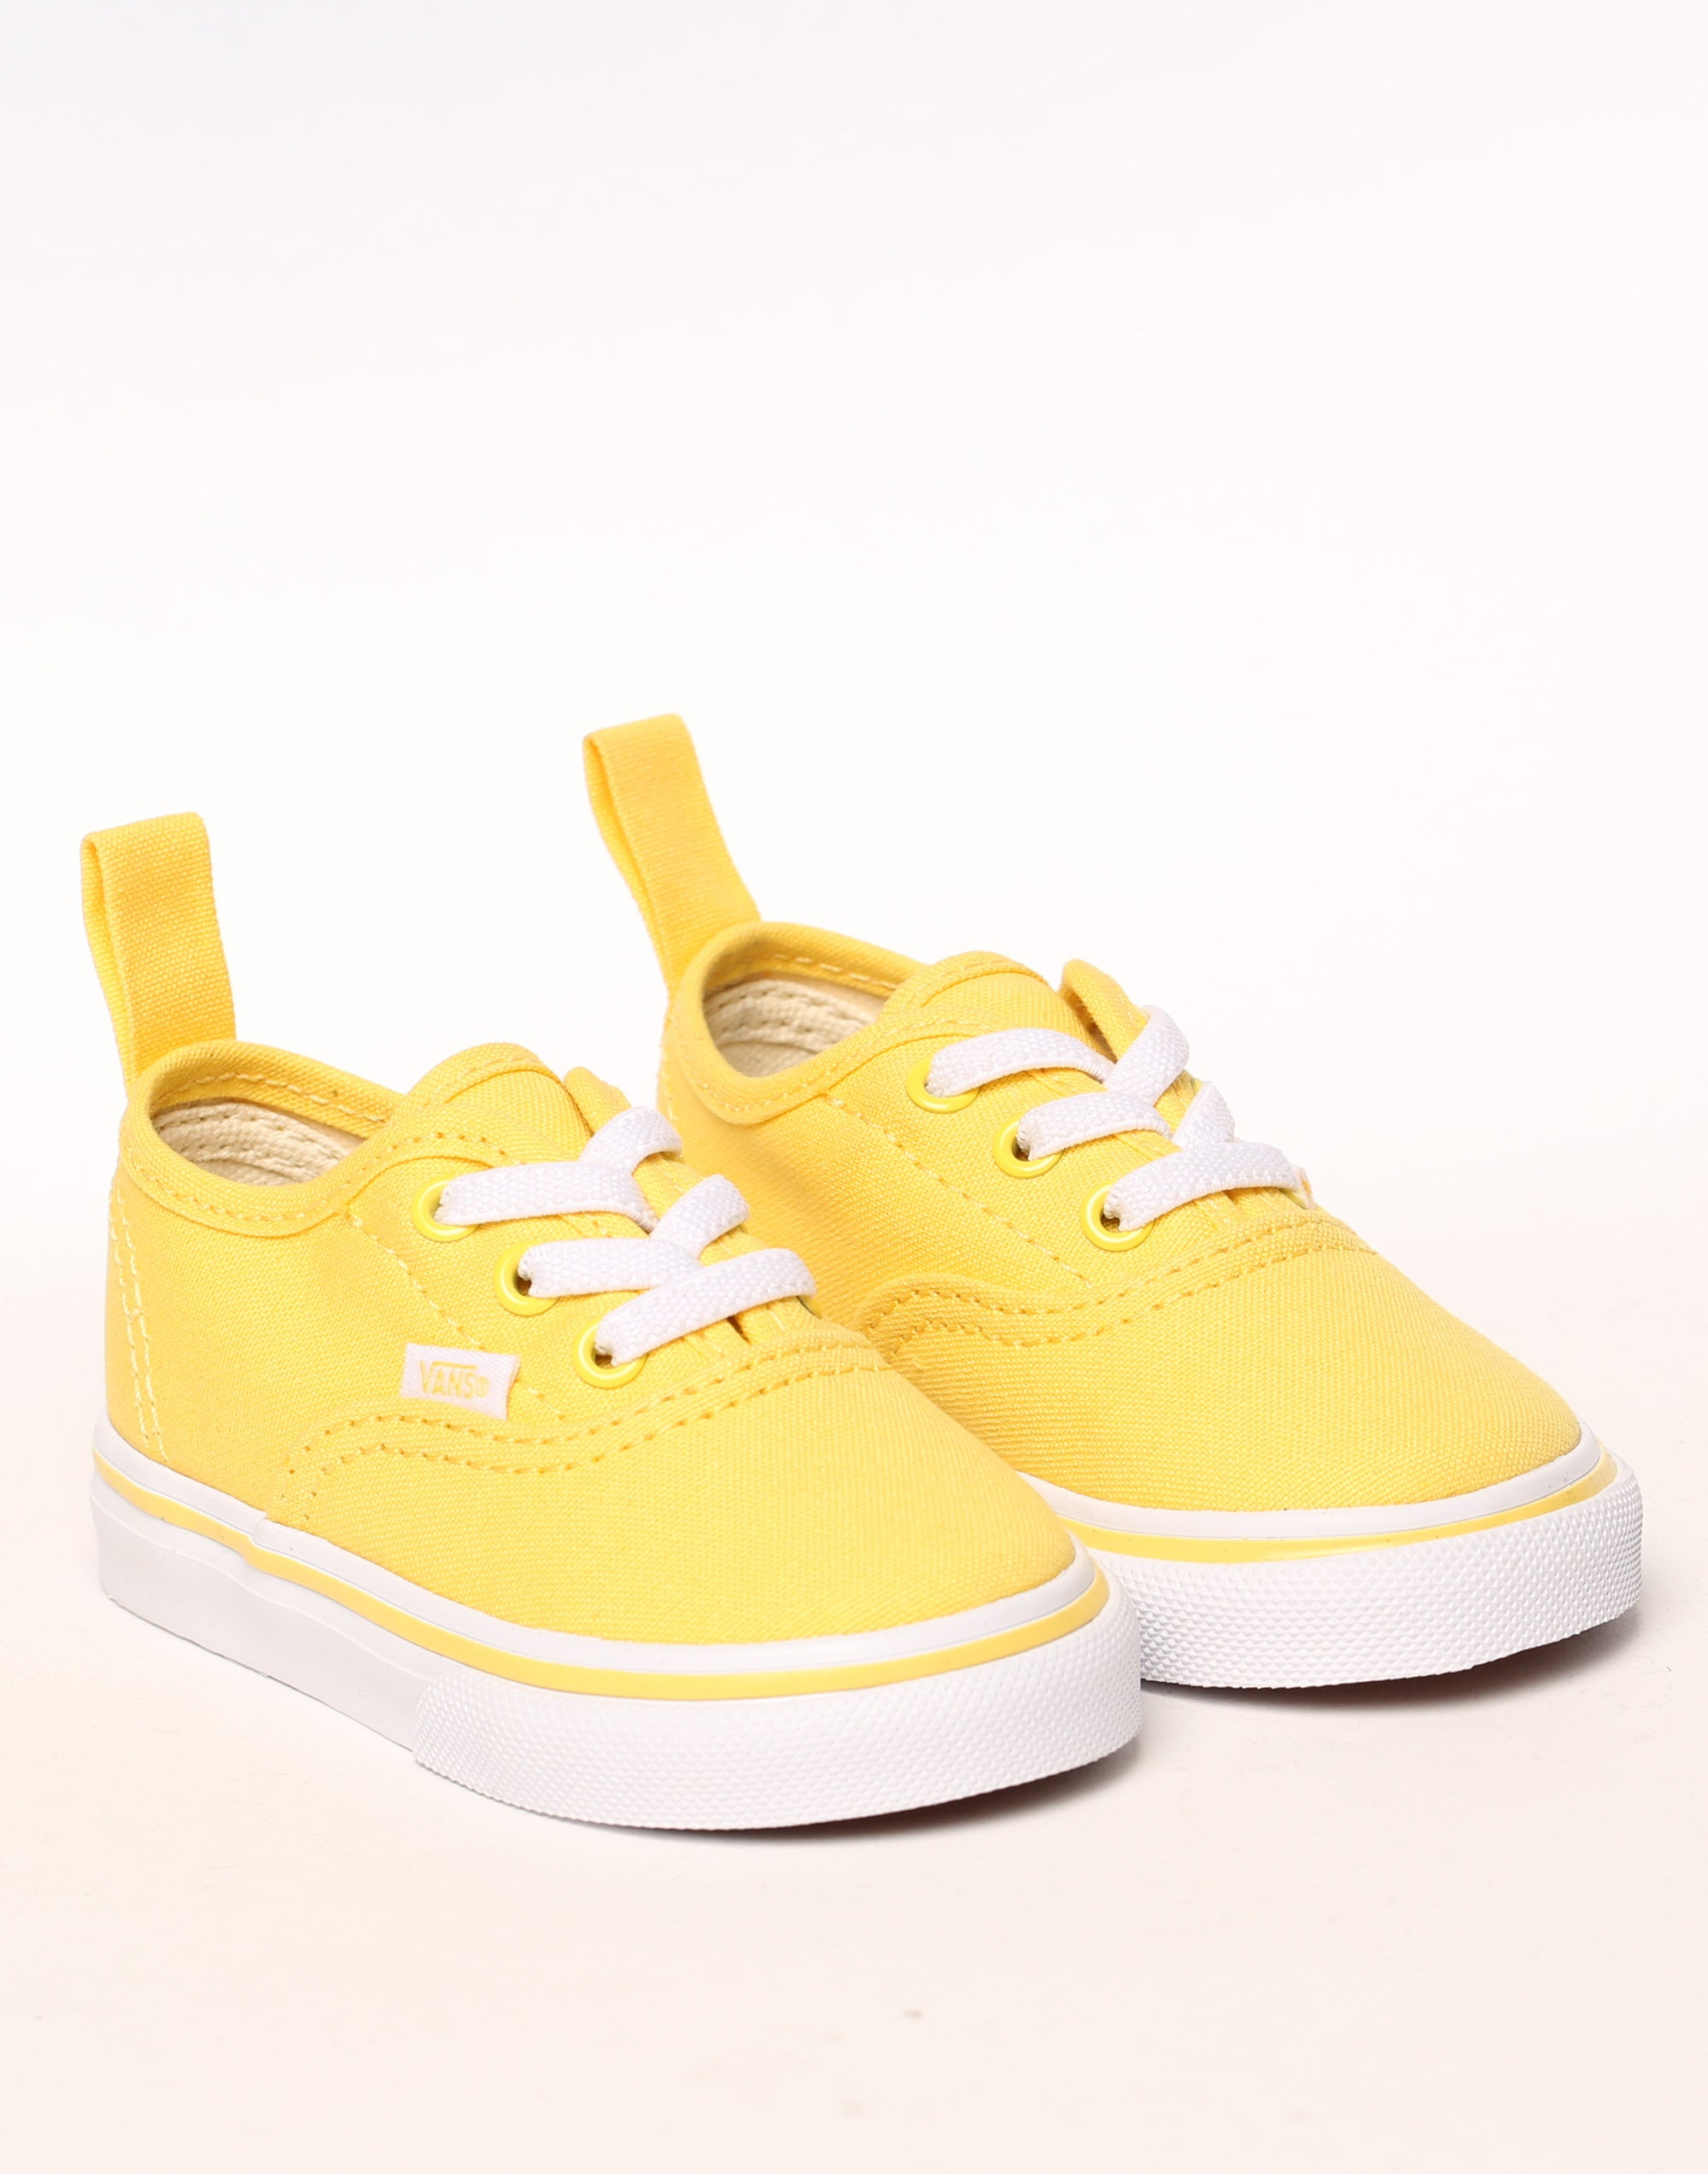 Vans Toddler Authentic (Elastic) YellowWhite